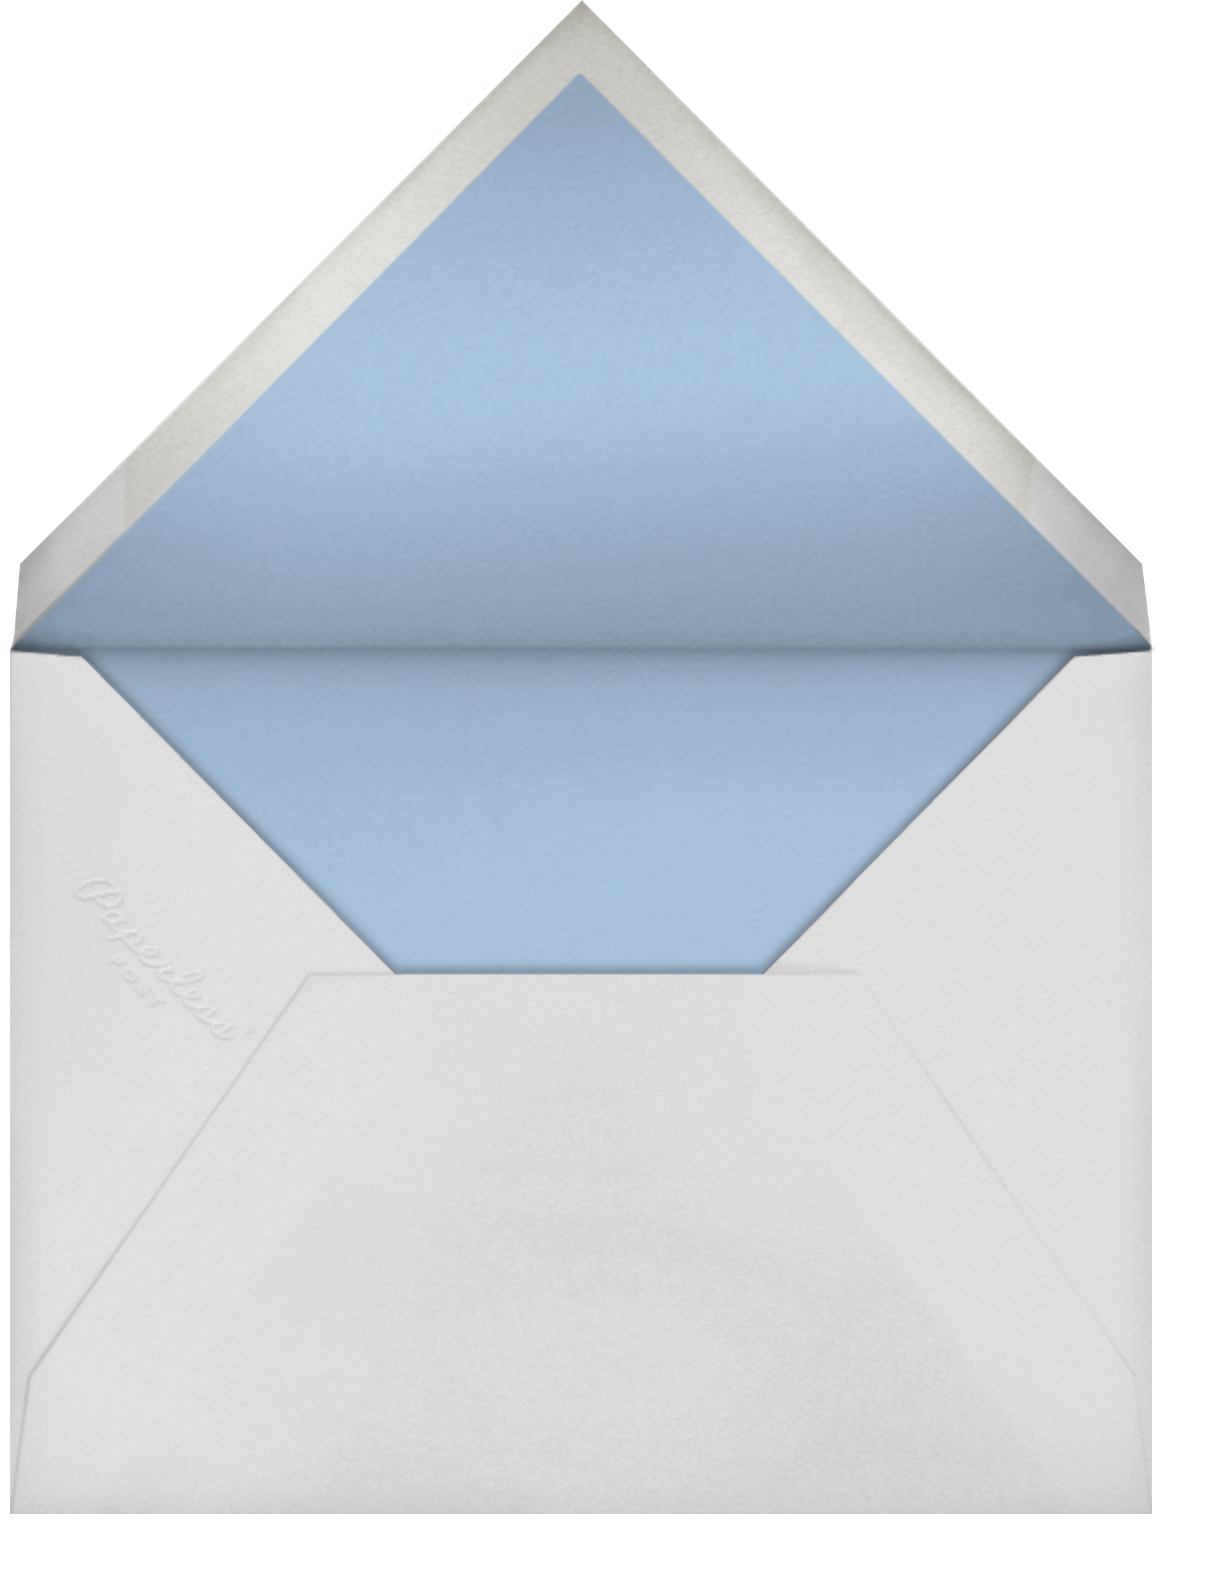 Off the Rack - Paperless Post - Envelope